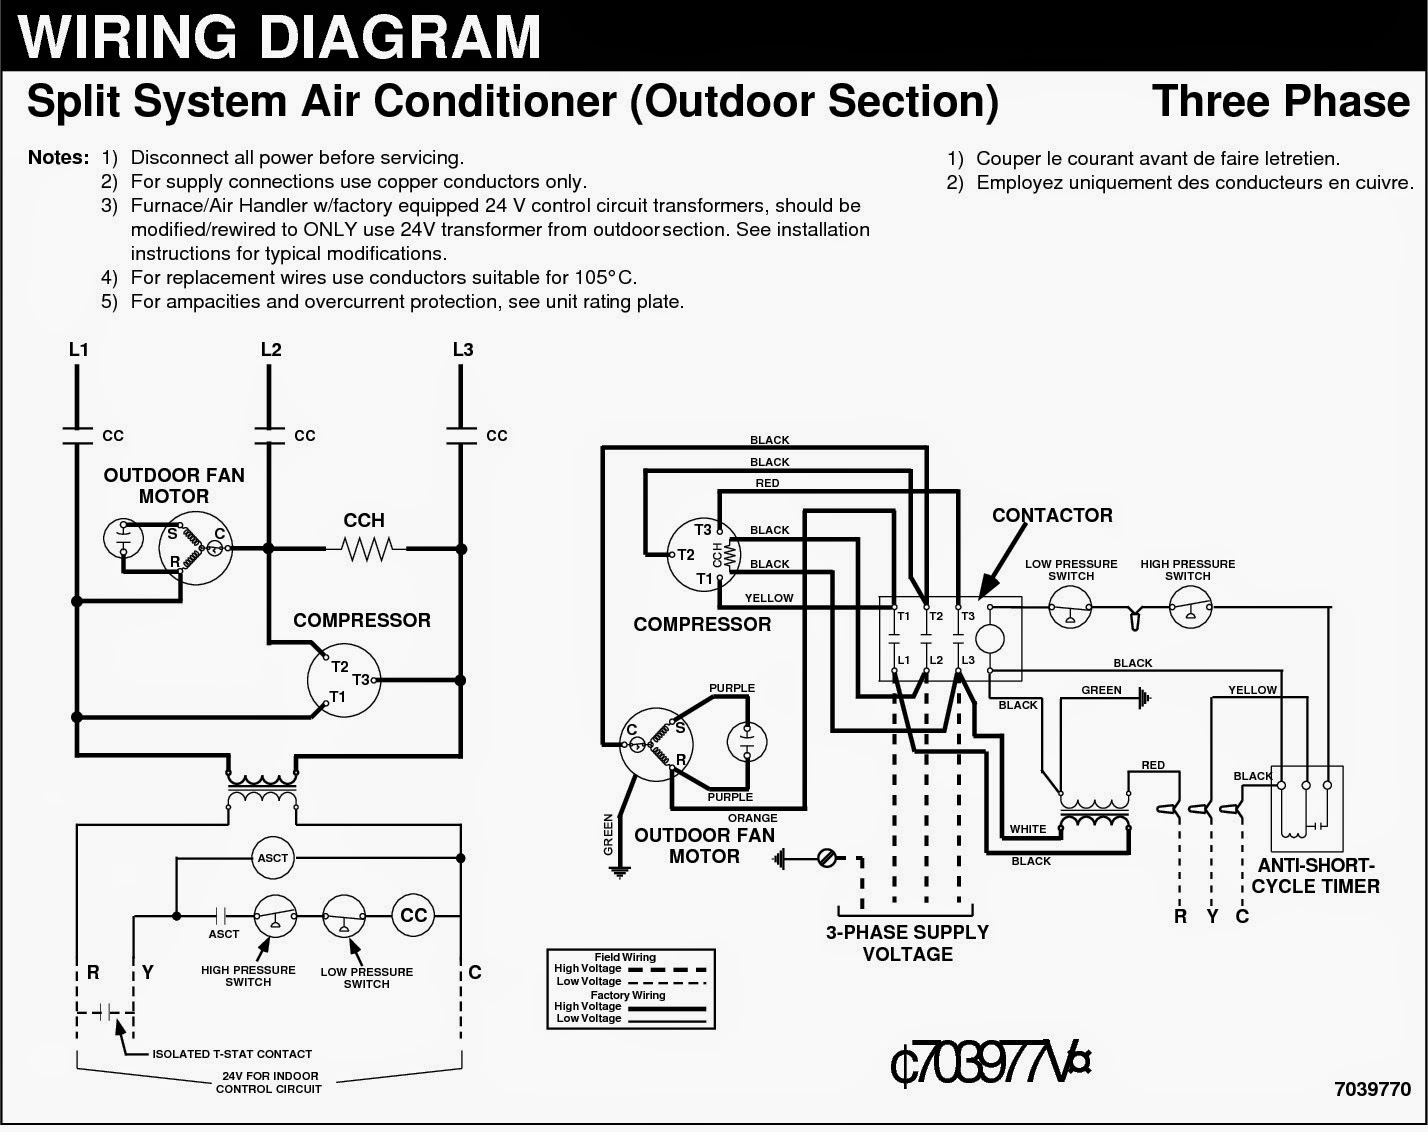 3+phase ac compressor wiring diagram bitzer compressor wiring diagram single phase compressor wiring diagram at bayanpartner.co